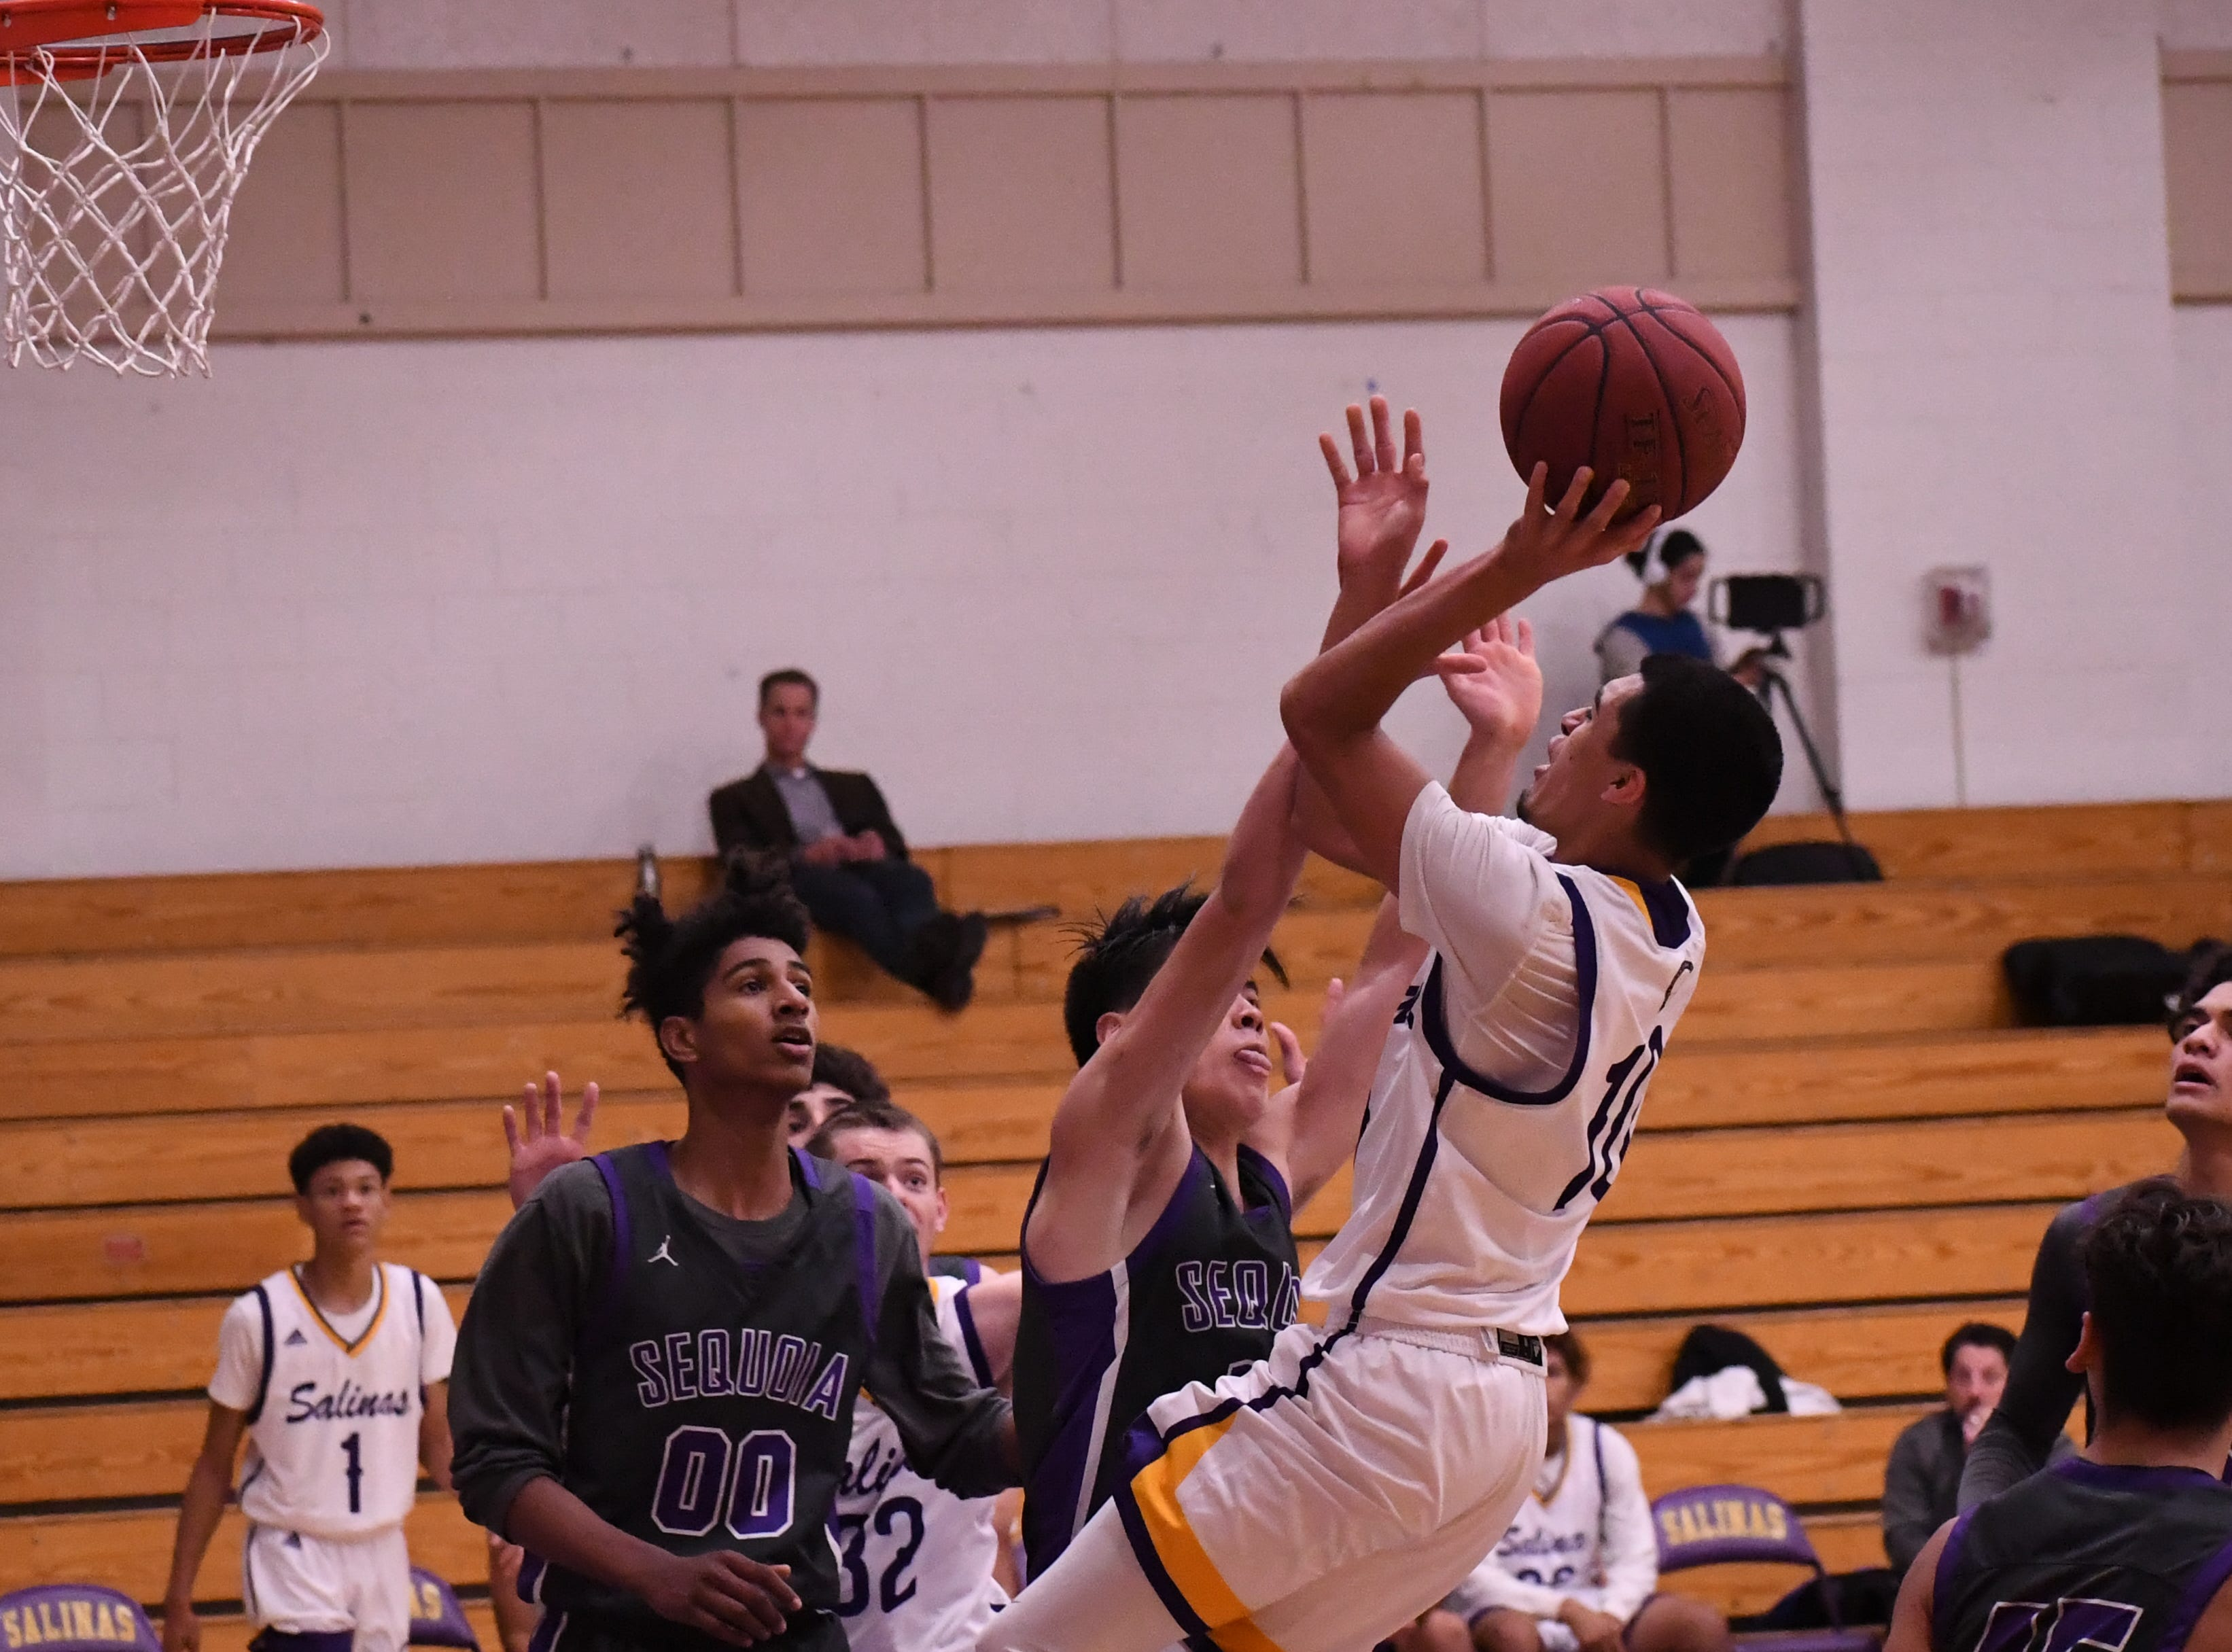 Guard AJ Saldana (10) pulls up for a shot from outside the paint.